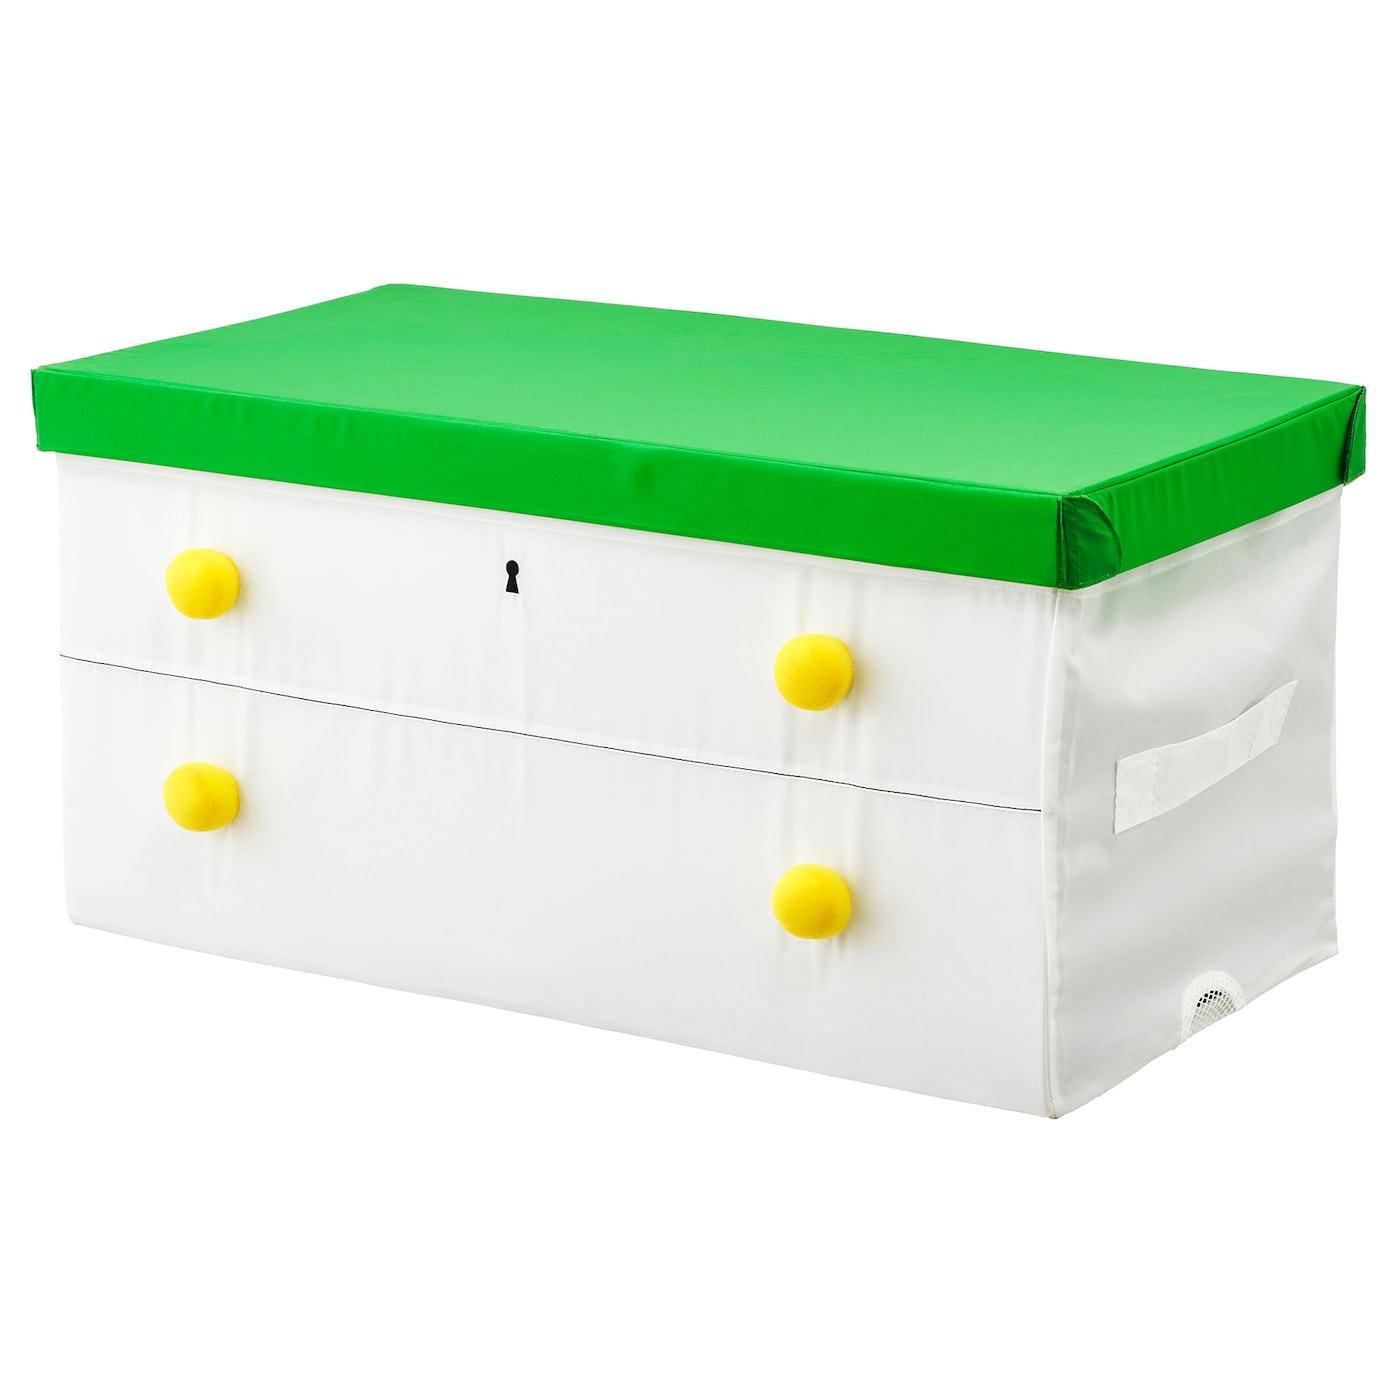 IKEA FLYTTBAR box with lid Easy for your child to lift and move since the box has a handle.